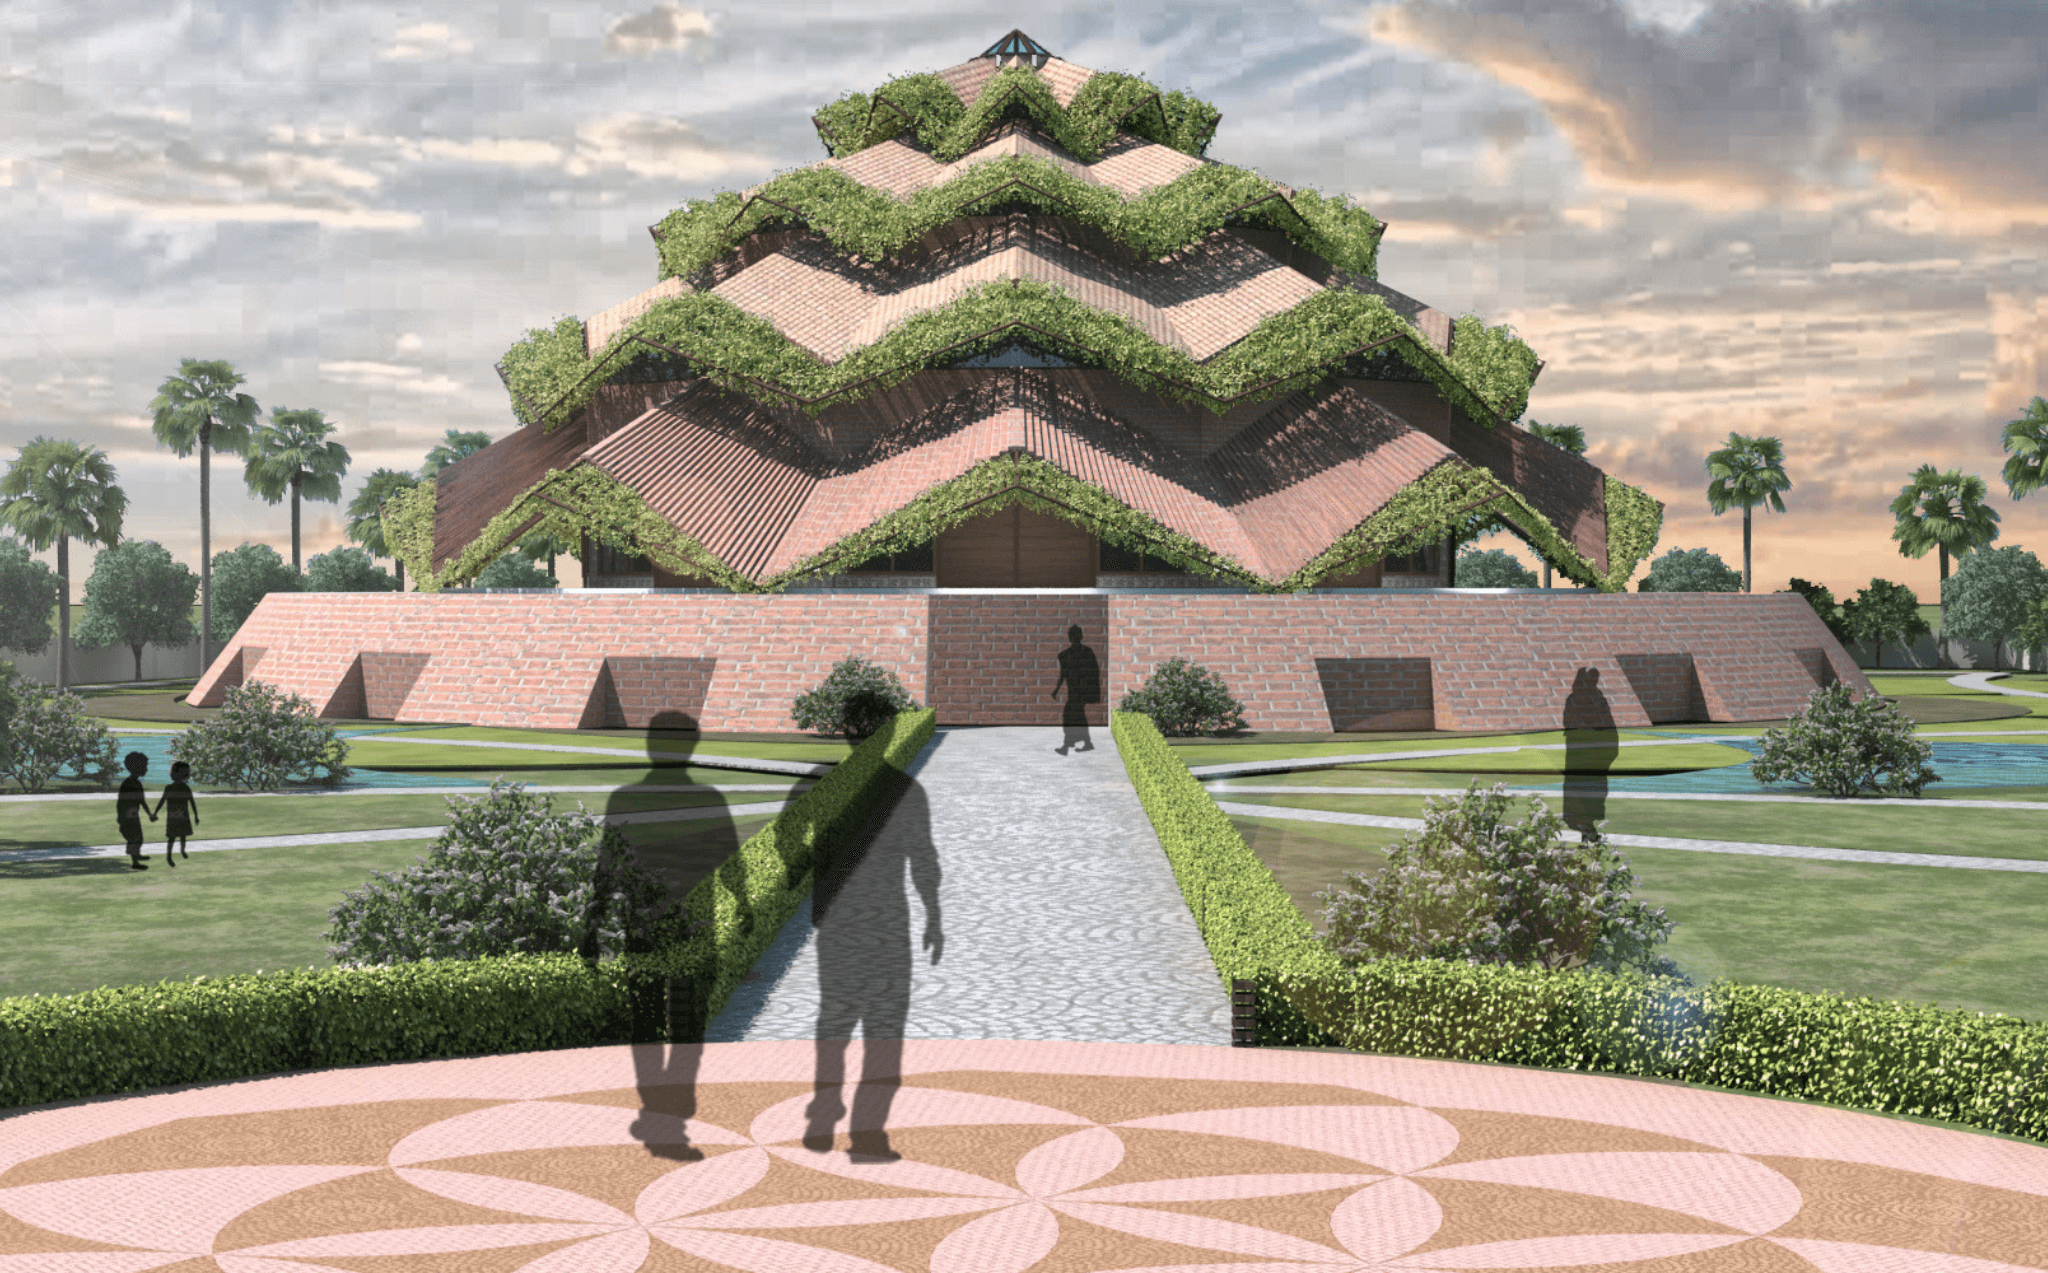 "A civic project titled 'BAHAI TEMPLE' inspired by principles of Sacred Geometry and the description of the House of worship promoting the ""oneness of humankind""."